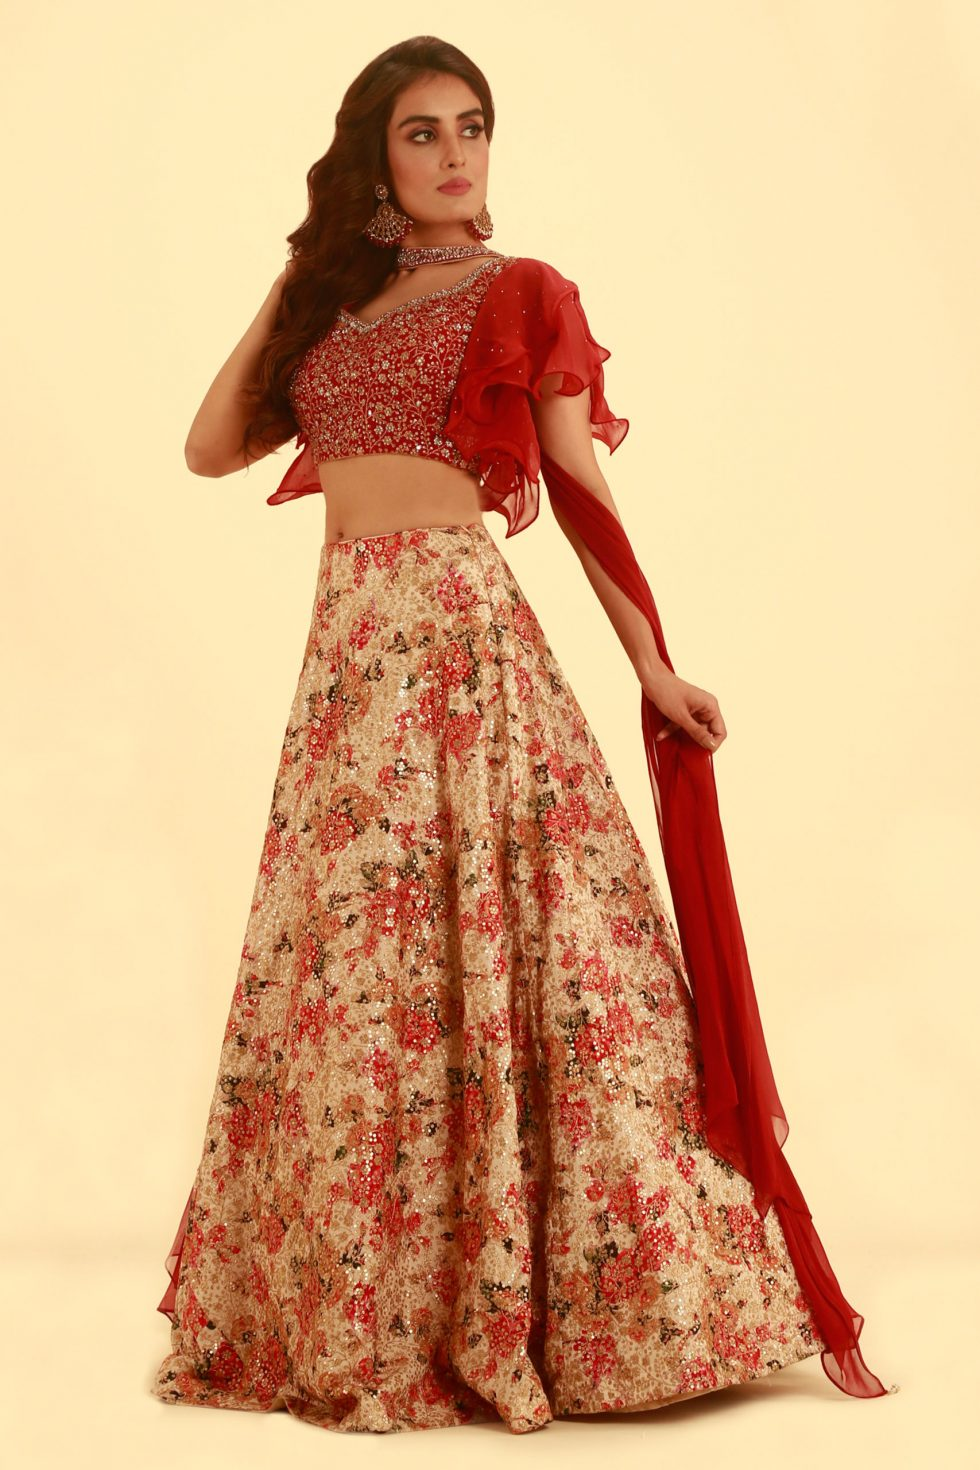 Fiery red sequin lehenga set with floral motifs, frill sleeves and a matching necklace dupatta